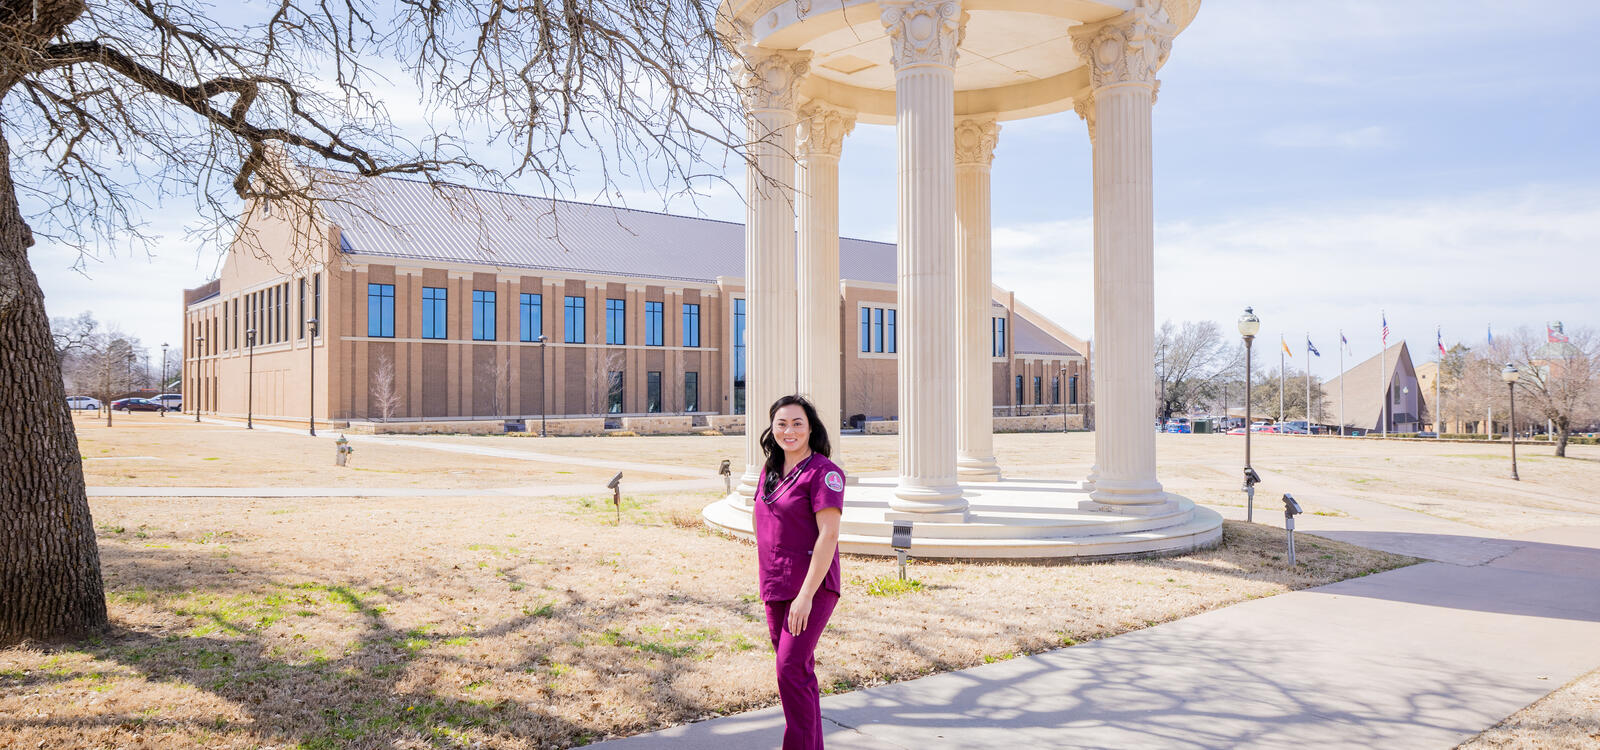 Linh Vu poses in SWAU scrubs in front of the rotunda with the nursing building in the background